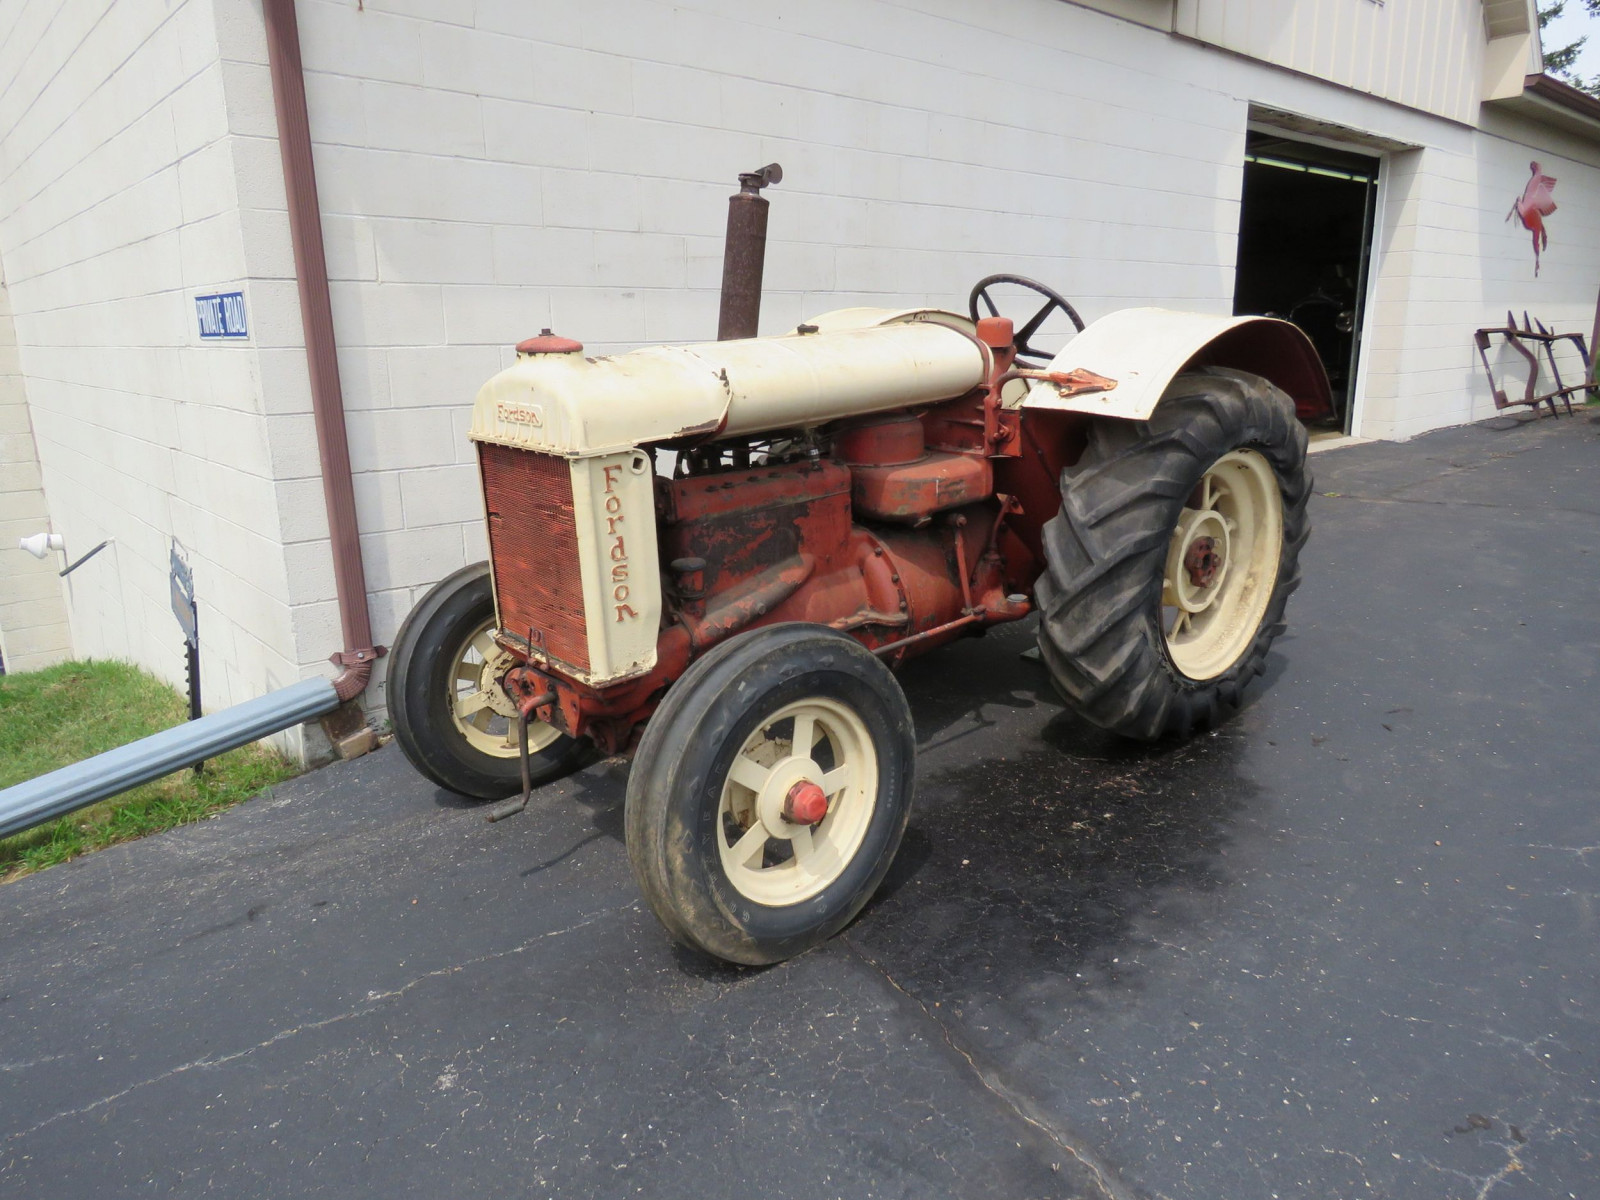 1936 Fordson N Tractor - Image 3